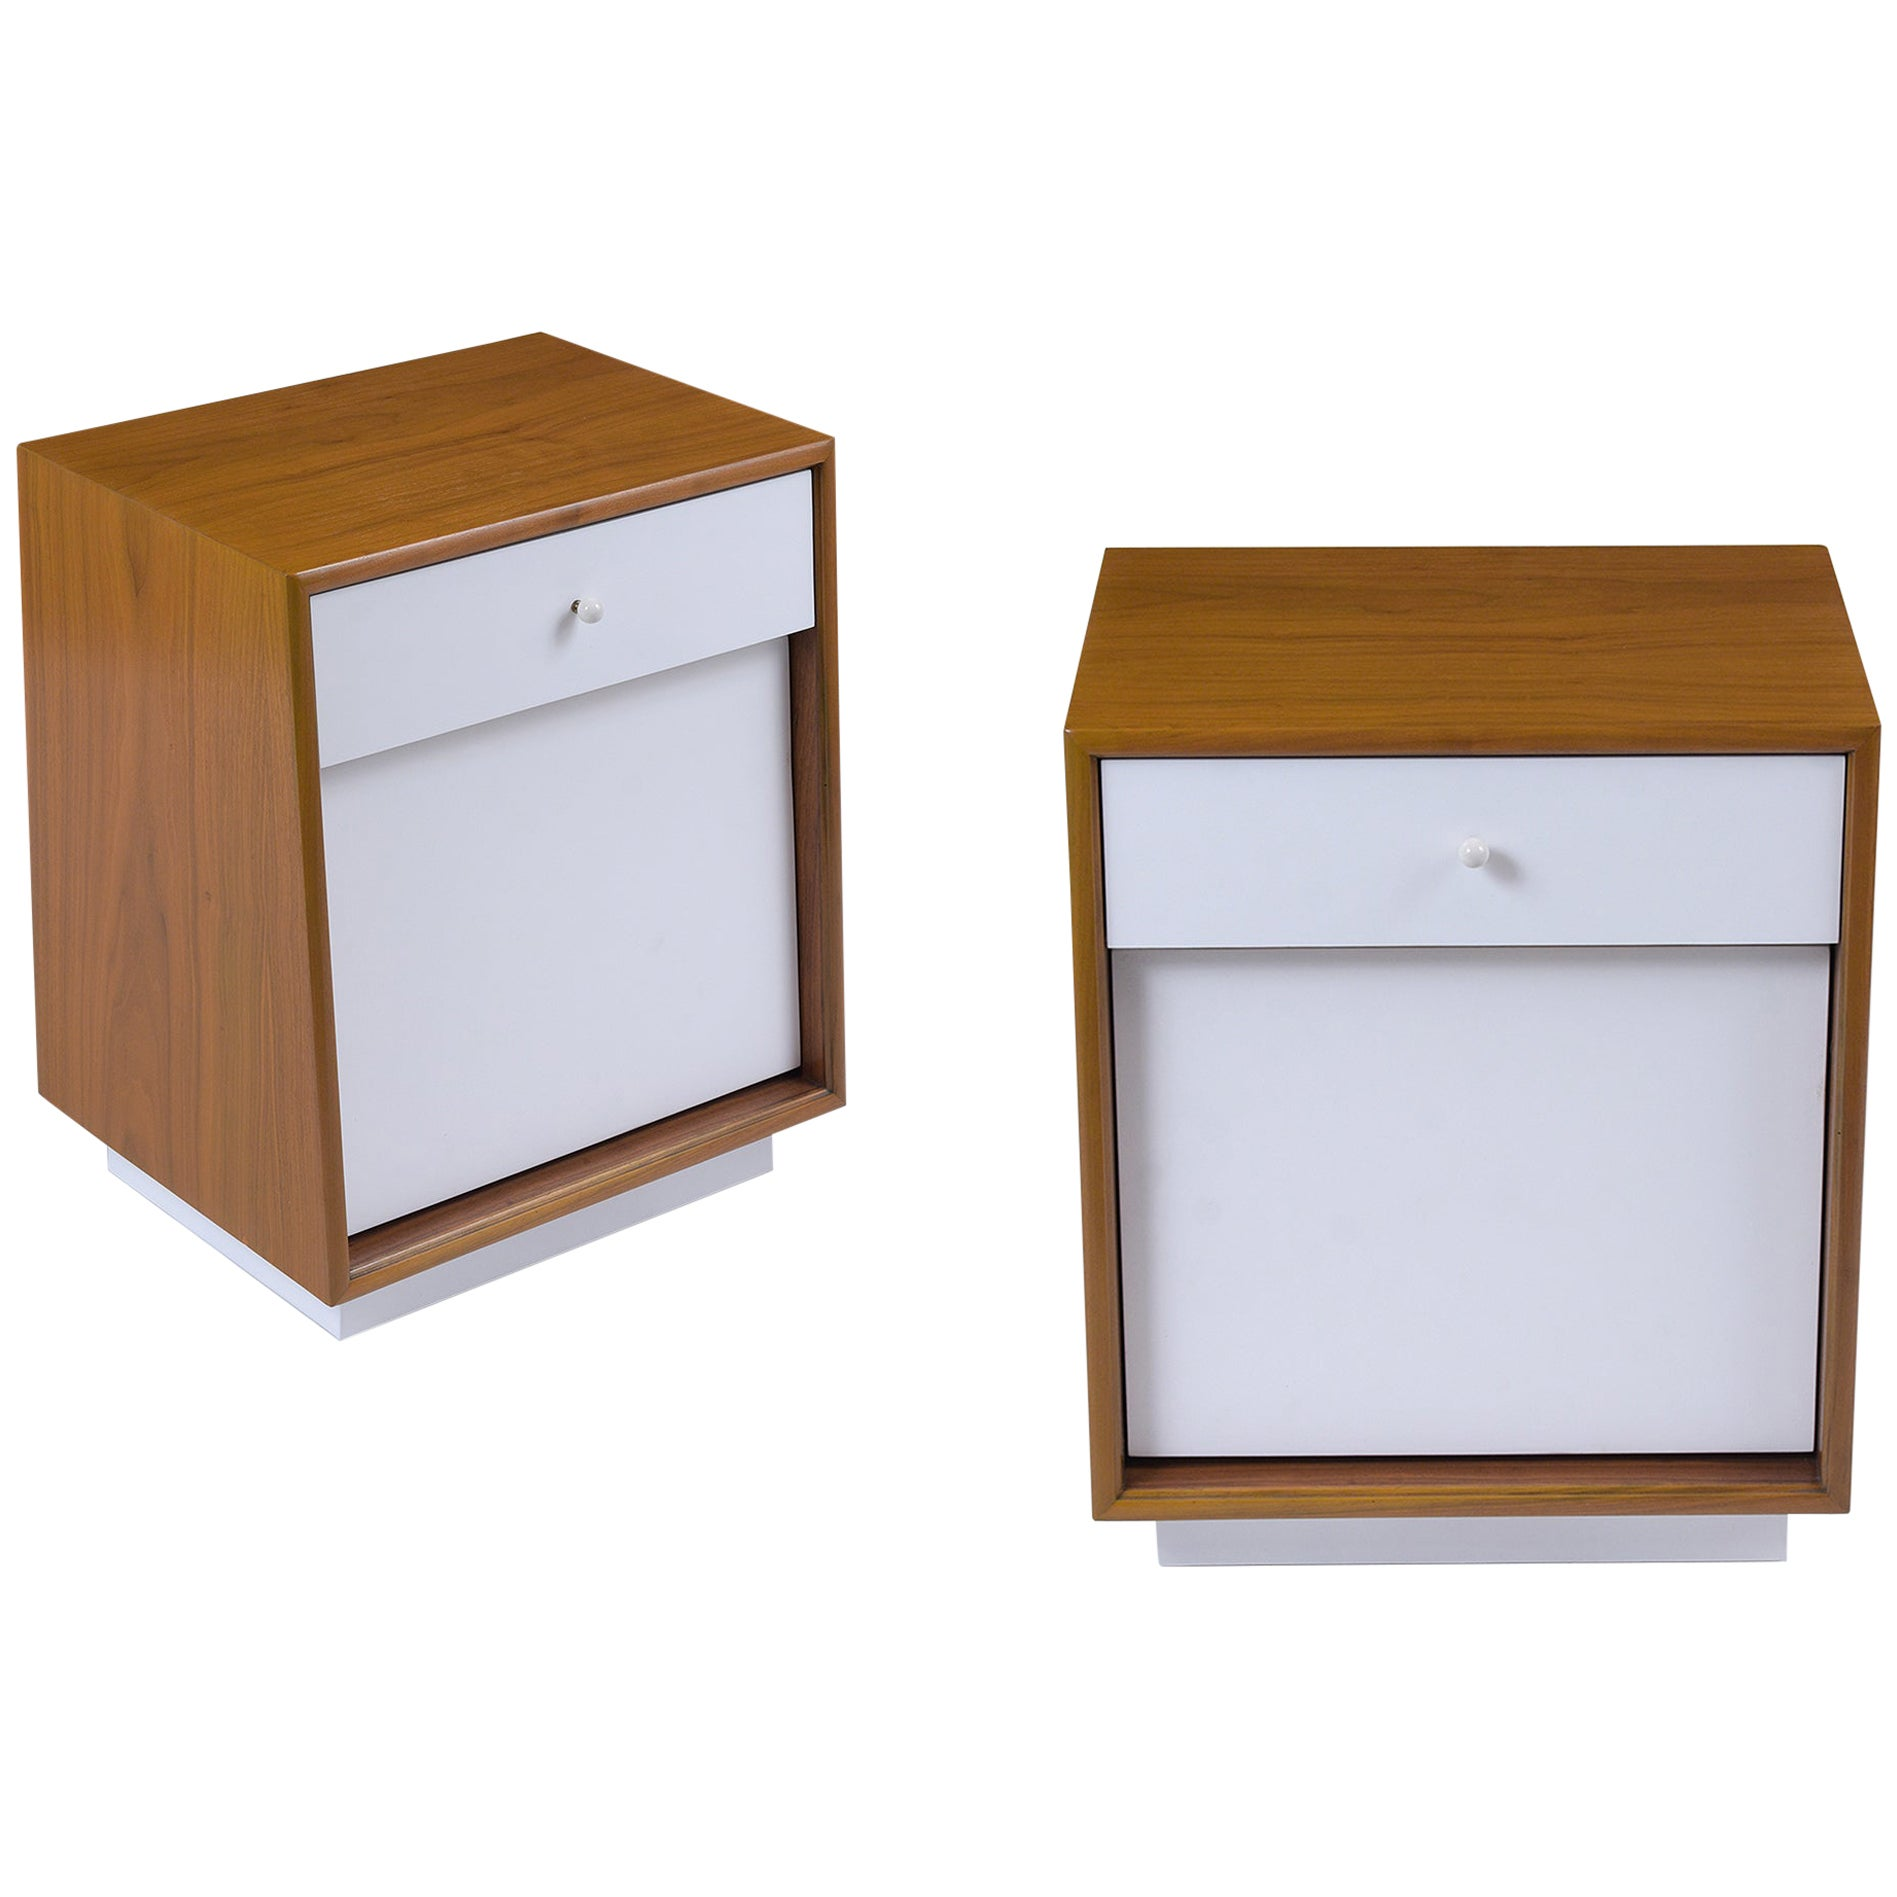 Pair of Lacquered Mid Century Modern Nightstands